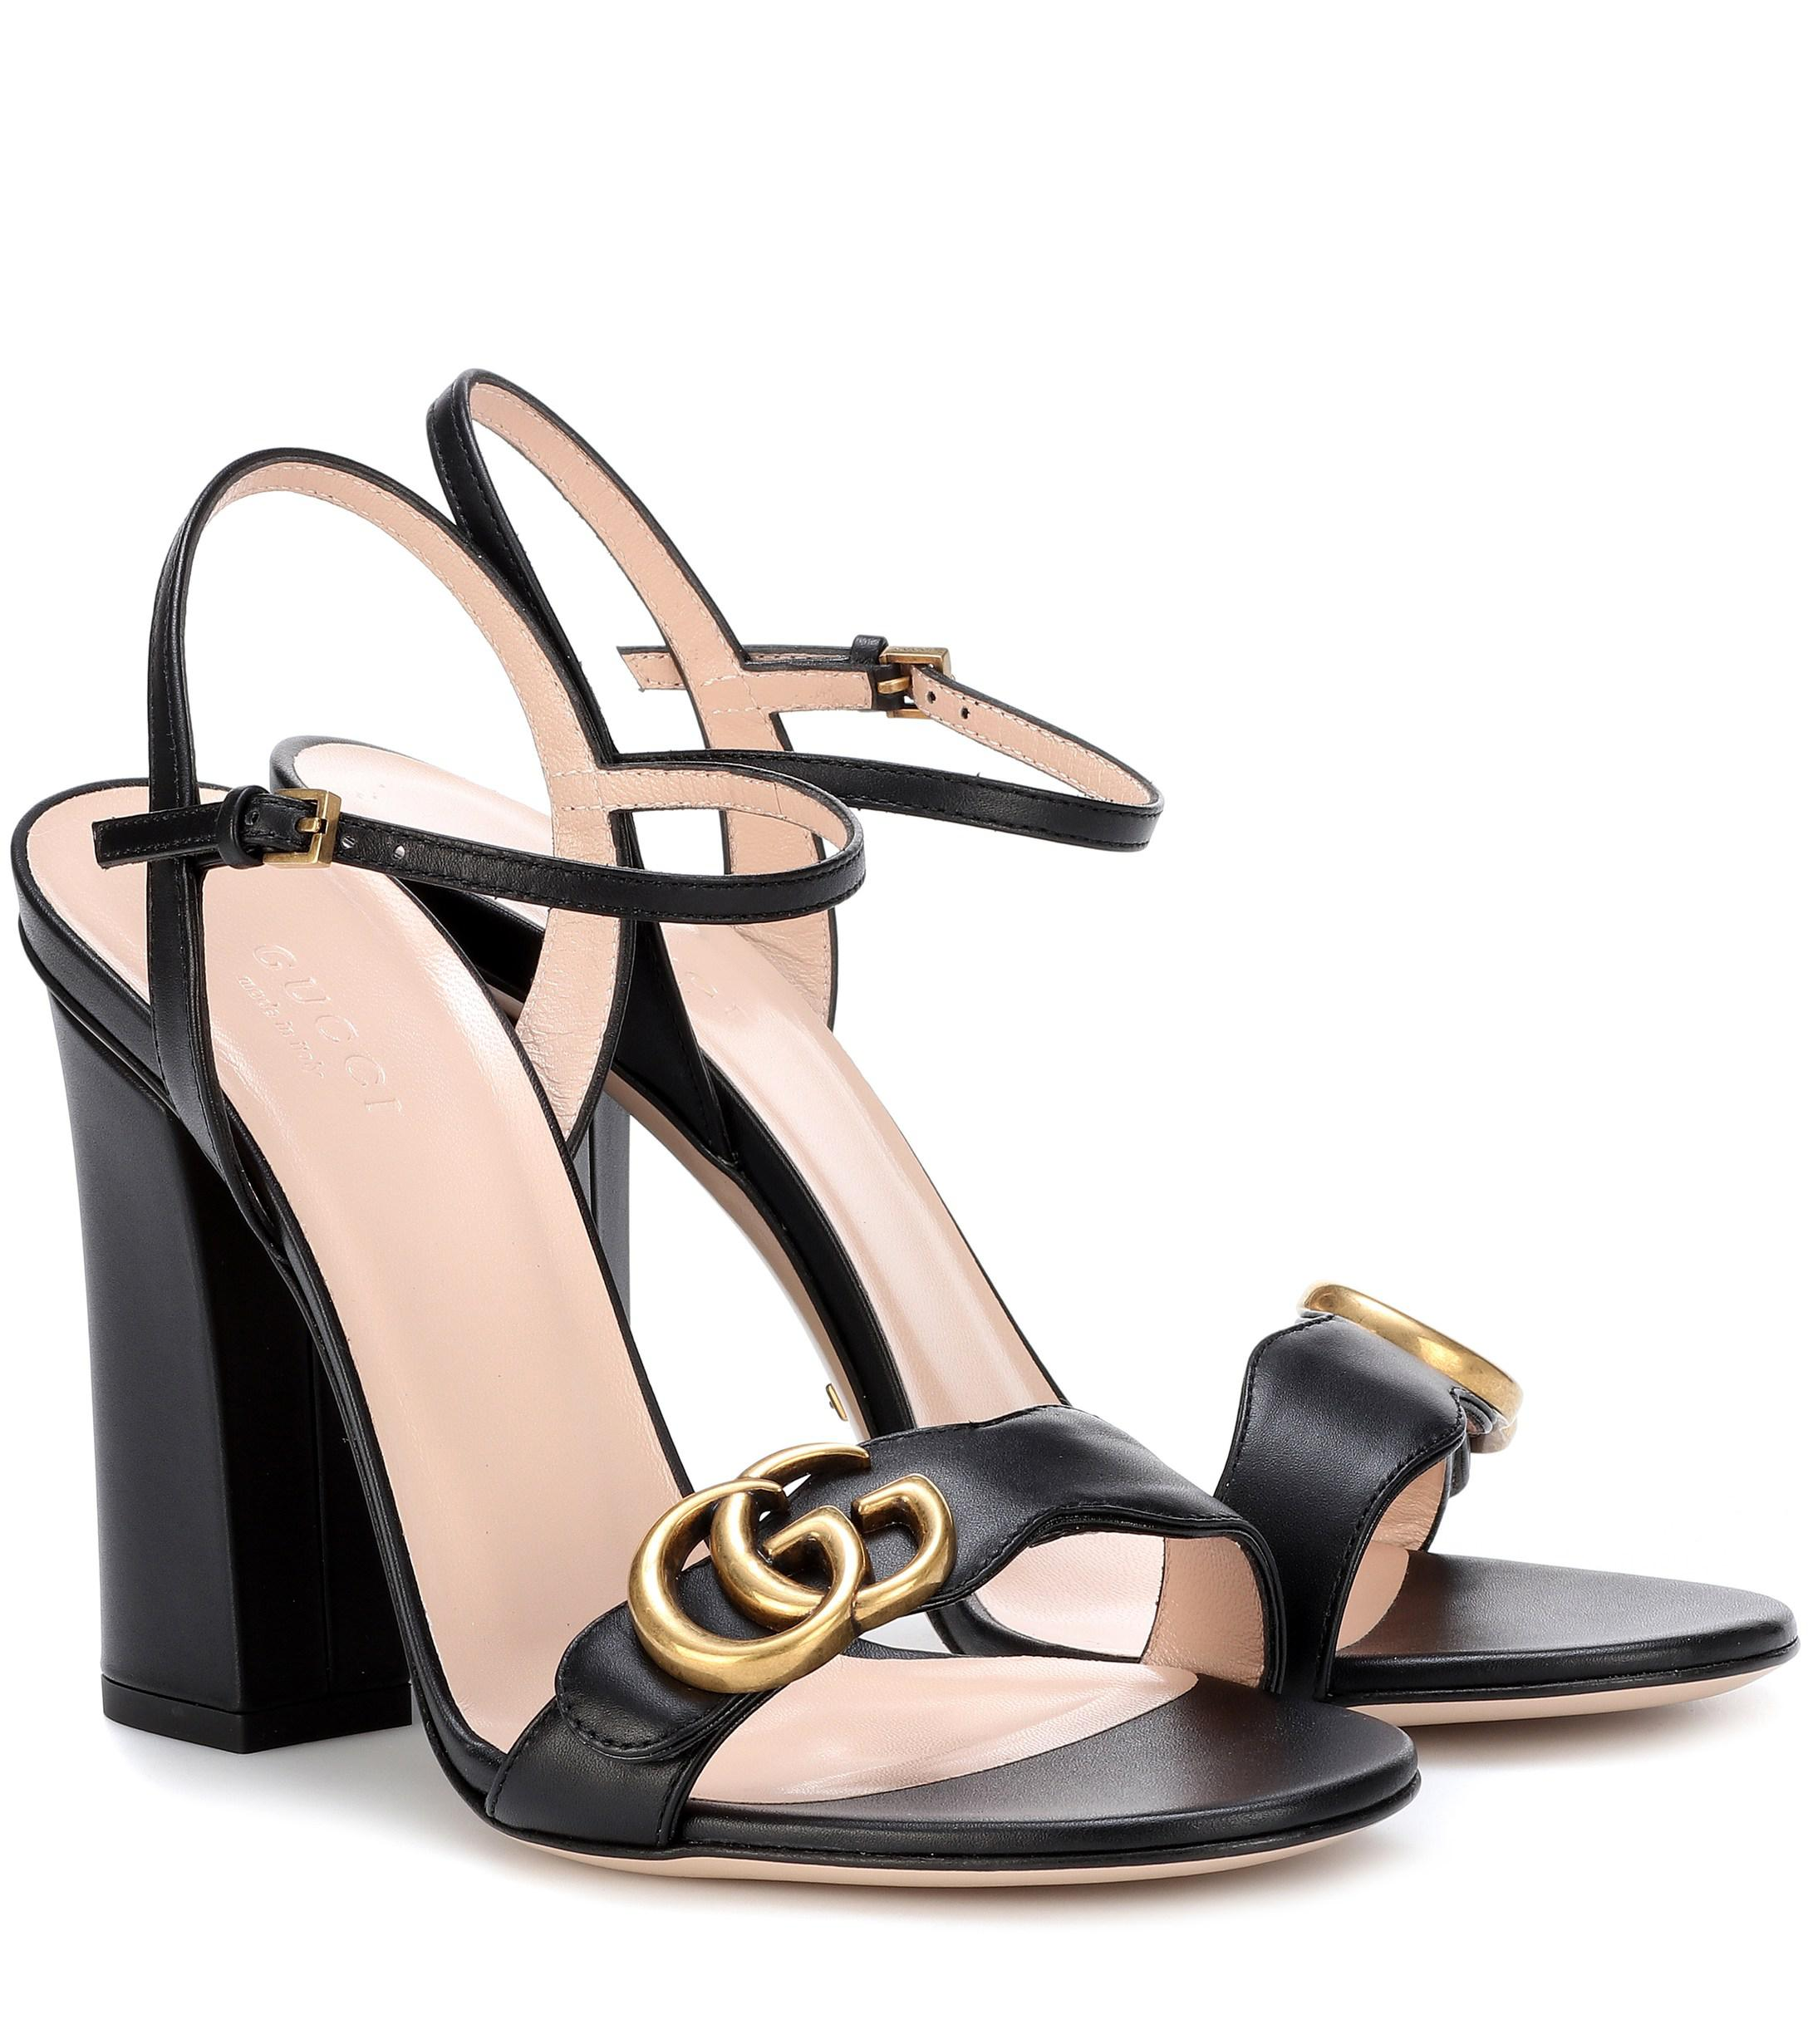 36533f6724bc Lyst - Gucci Embellished Leather Sandals in Black